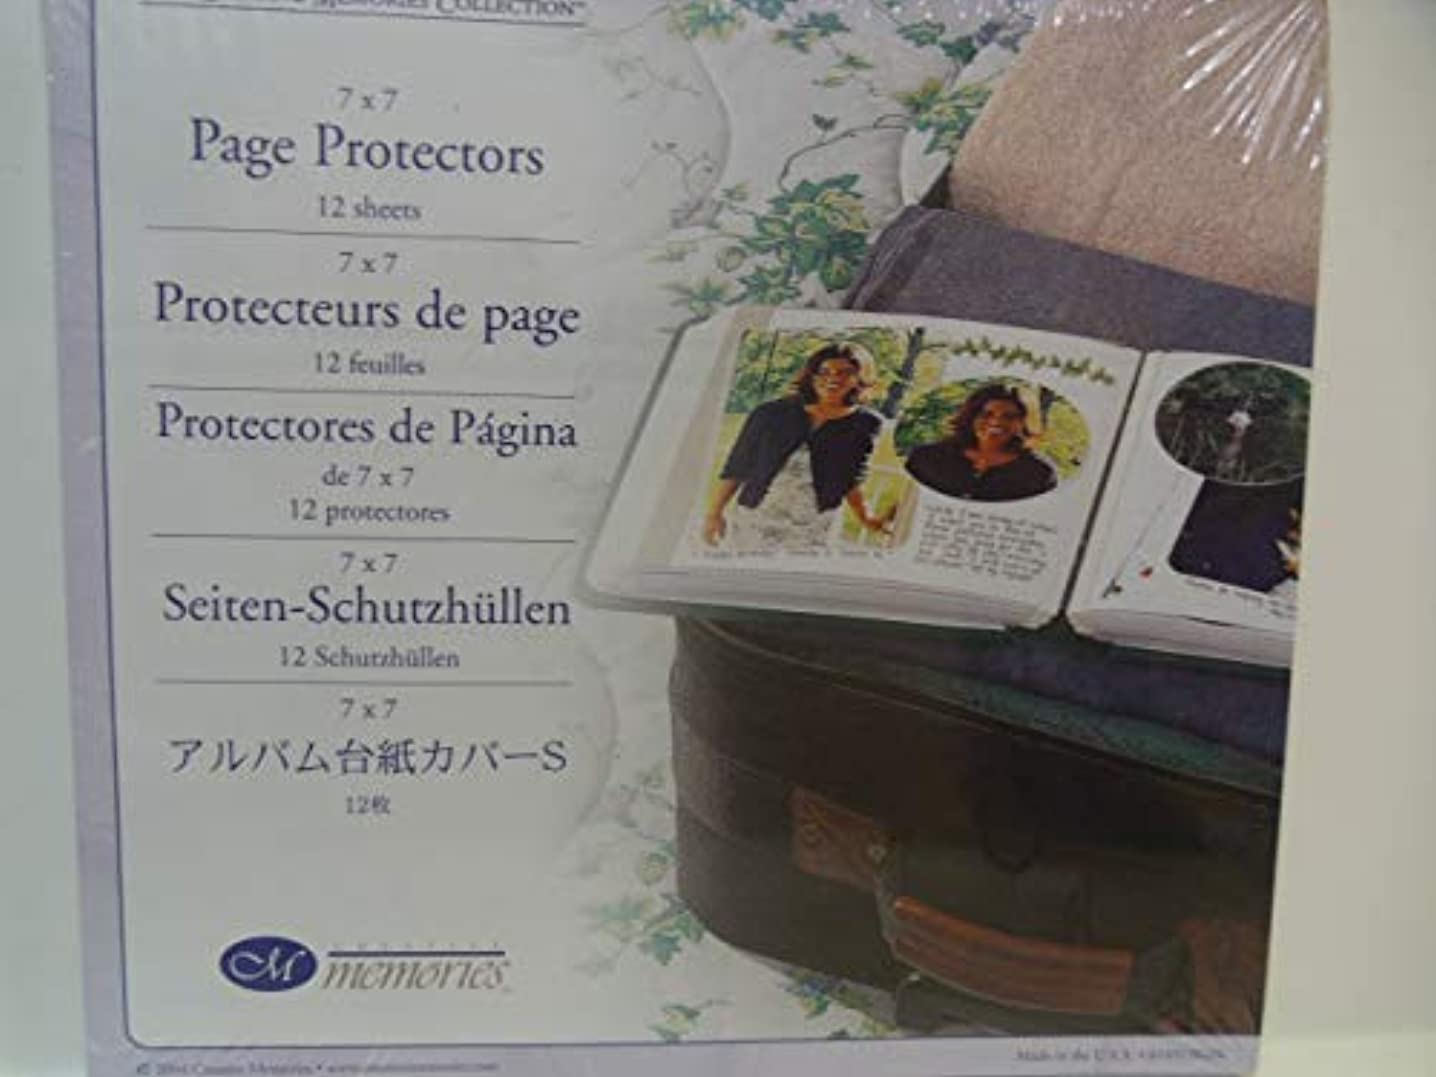 The creative memories Collection 7x7 Page Protectors